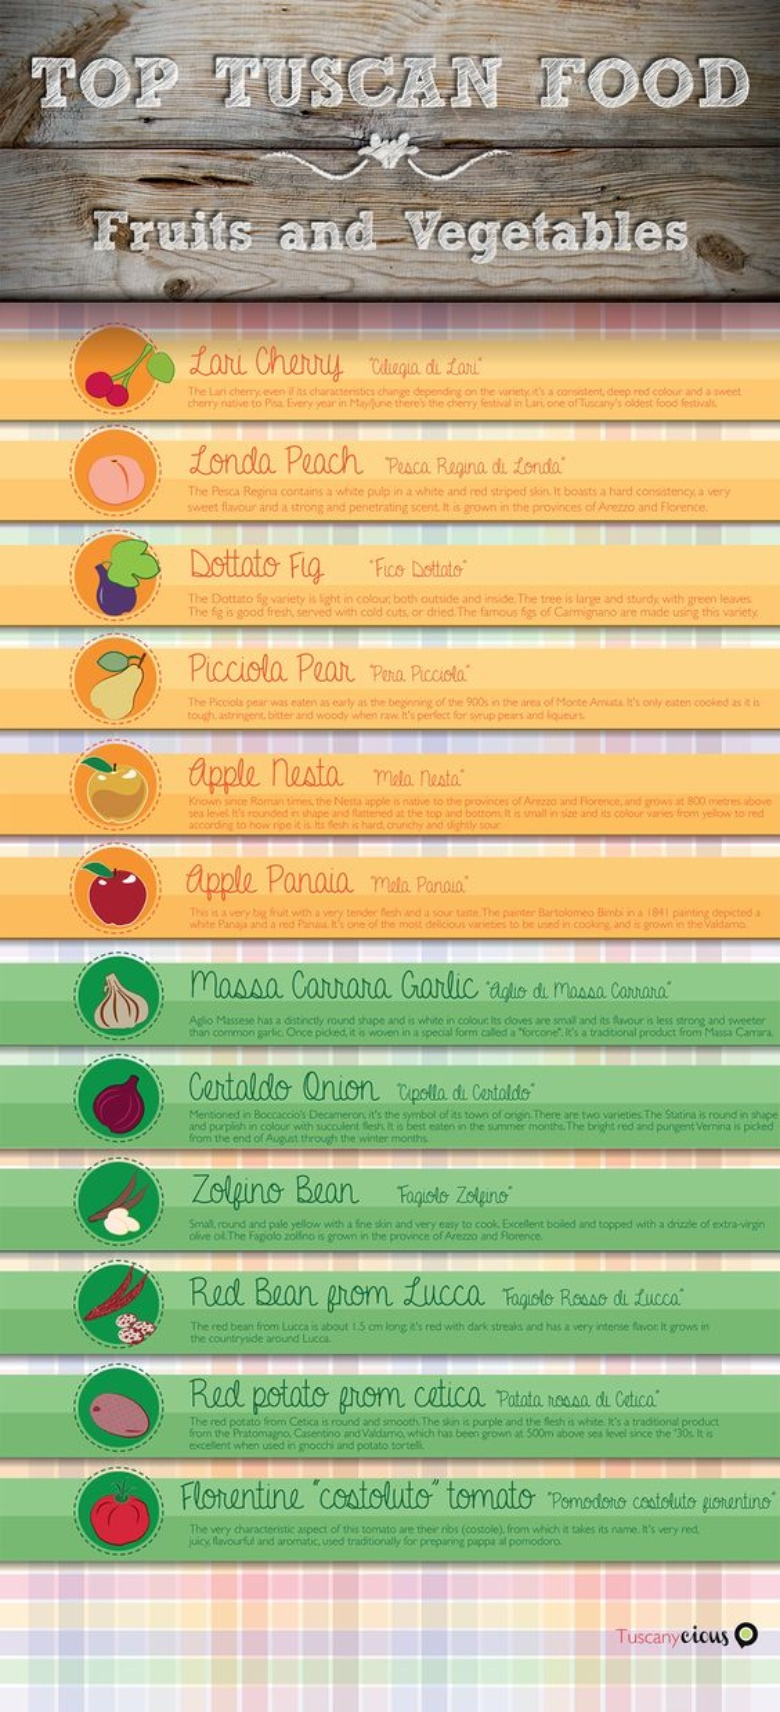 Tod Tuscan foods: 12 fruits and vegetables you must try